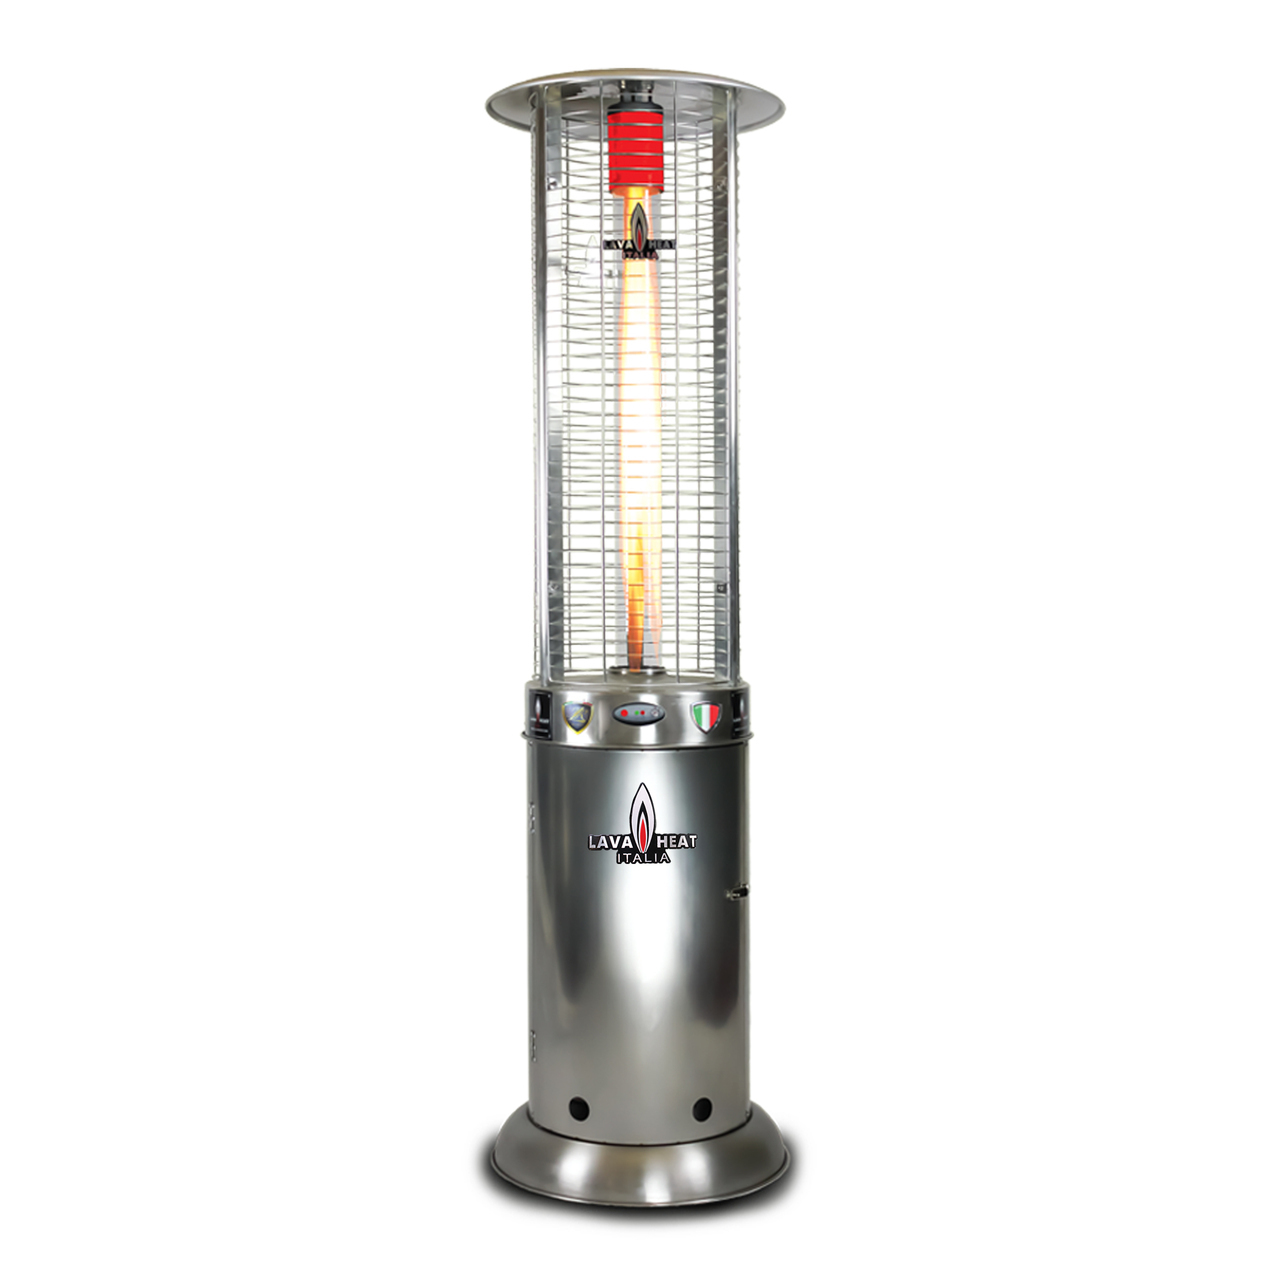 Lava Heat LP OPUS Round Flame Tower Heater - Stainless Steel